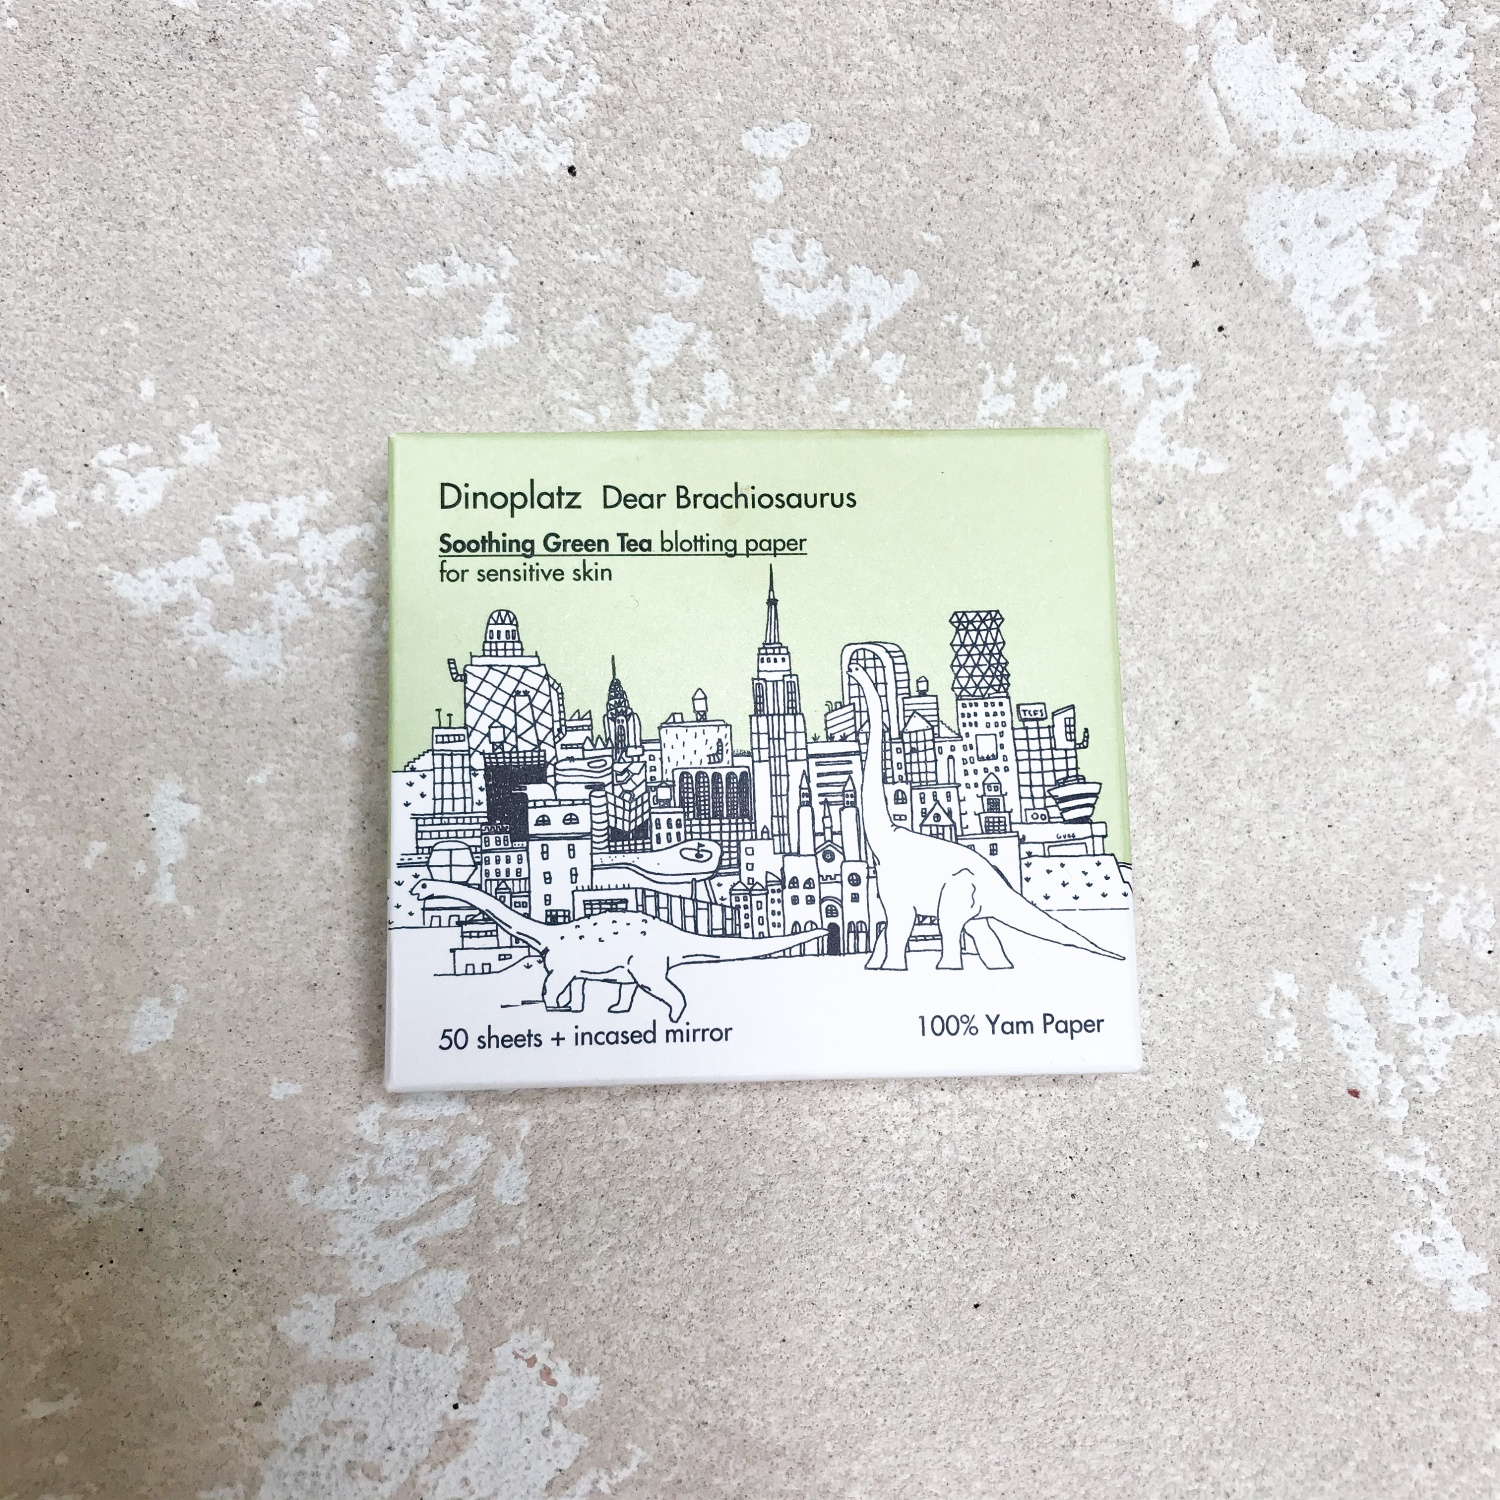 Too Cool For School Dinoplatz Dear Brachiosaurus Soothing Green Tea Blotting Paper